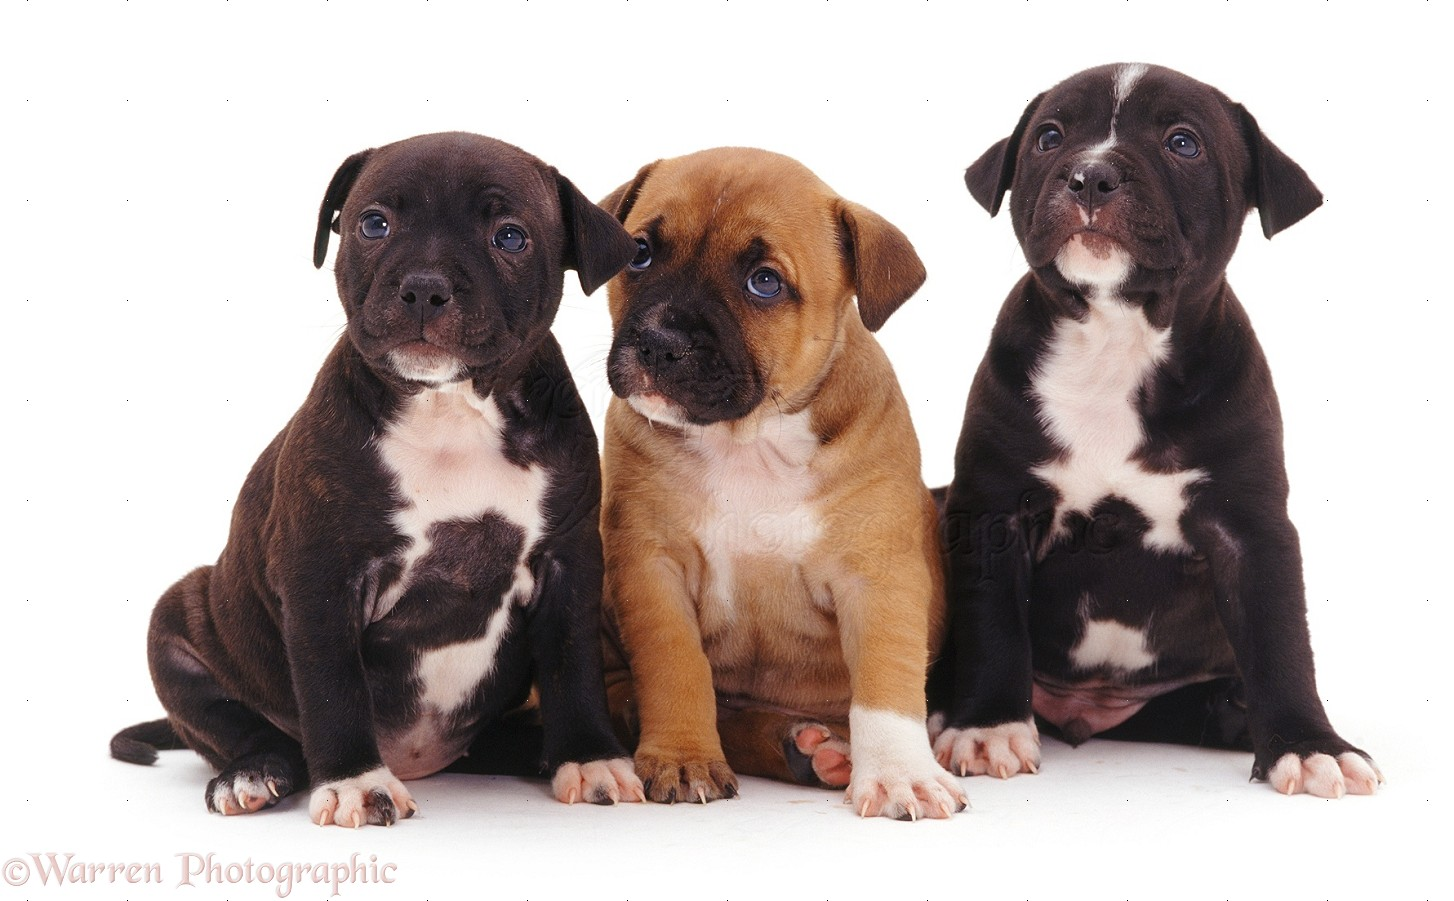 ... Brindle and red Staffordshire Bull Terrier puppies, 6 weeks old